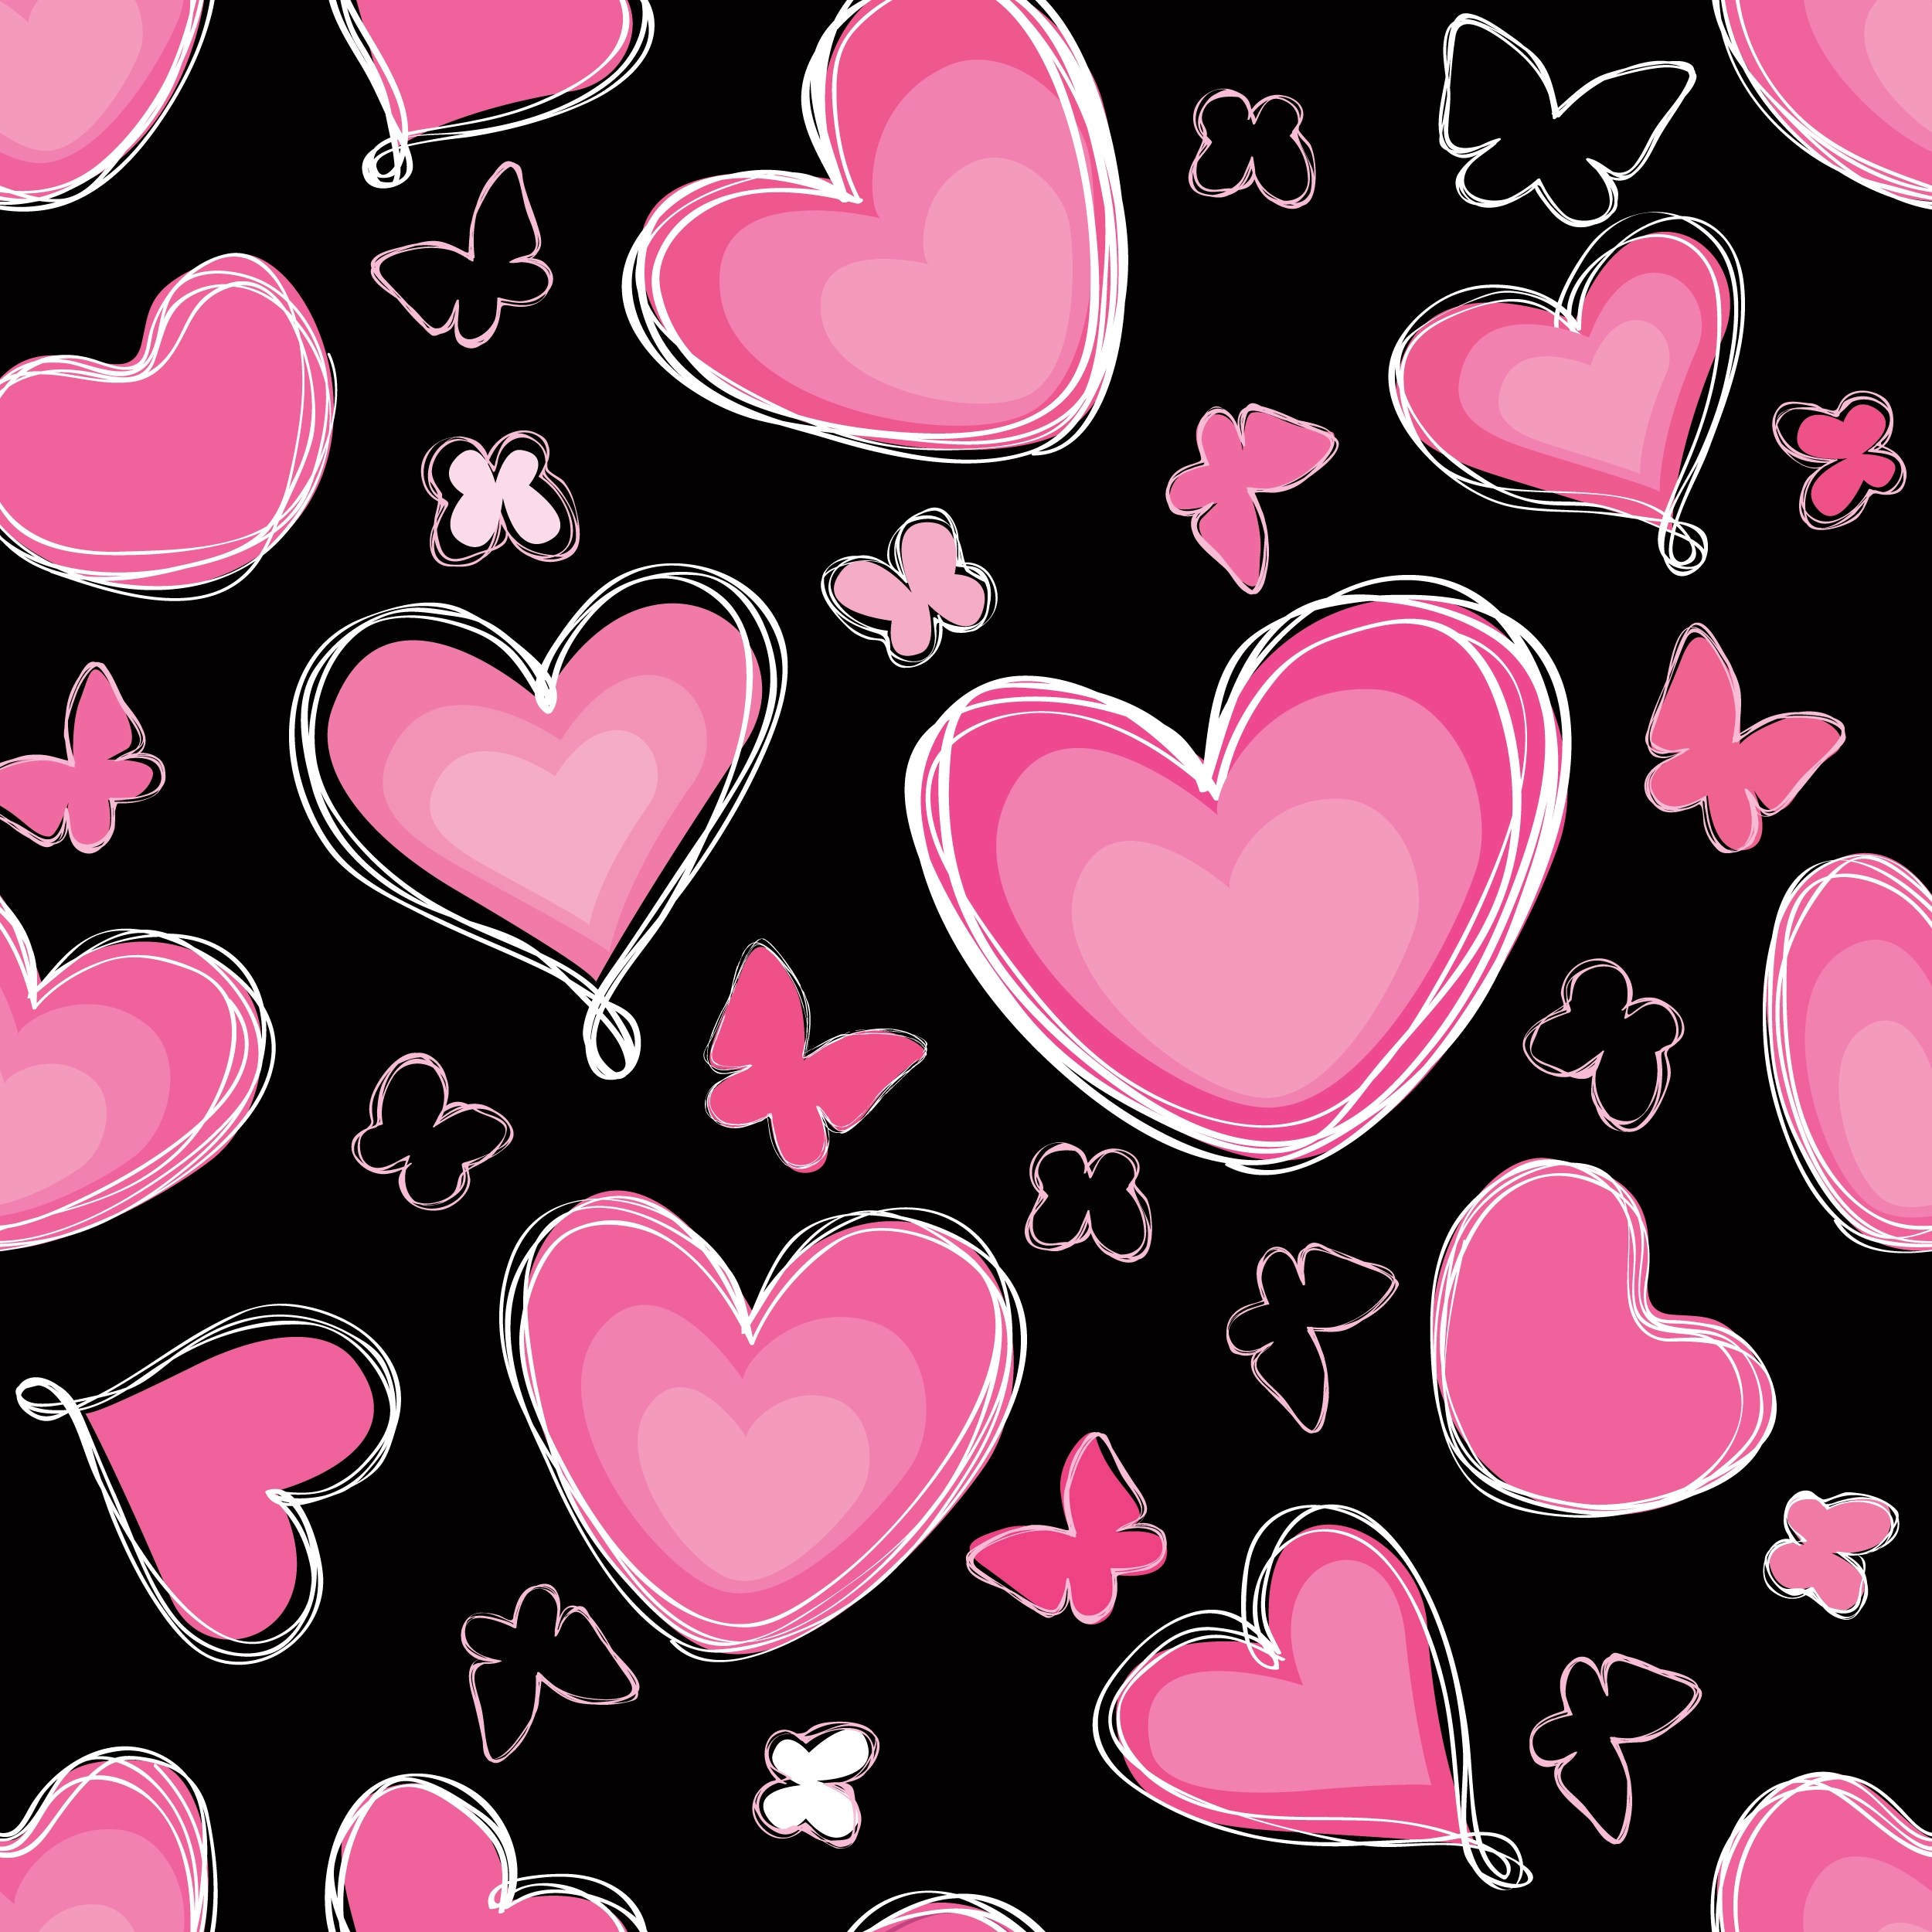 Love Heart Doodle Seamless Pattern Valentine Day Holiday